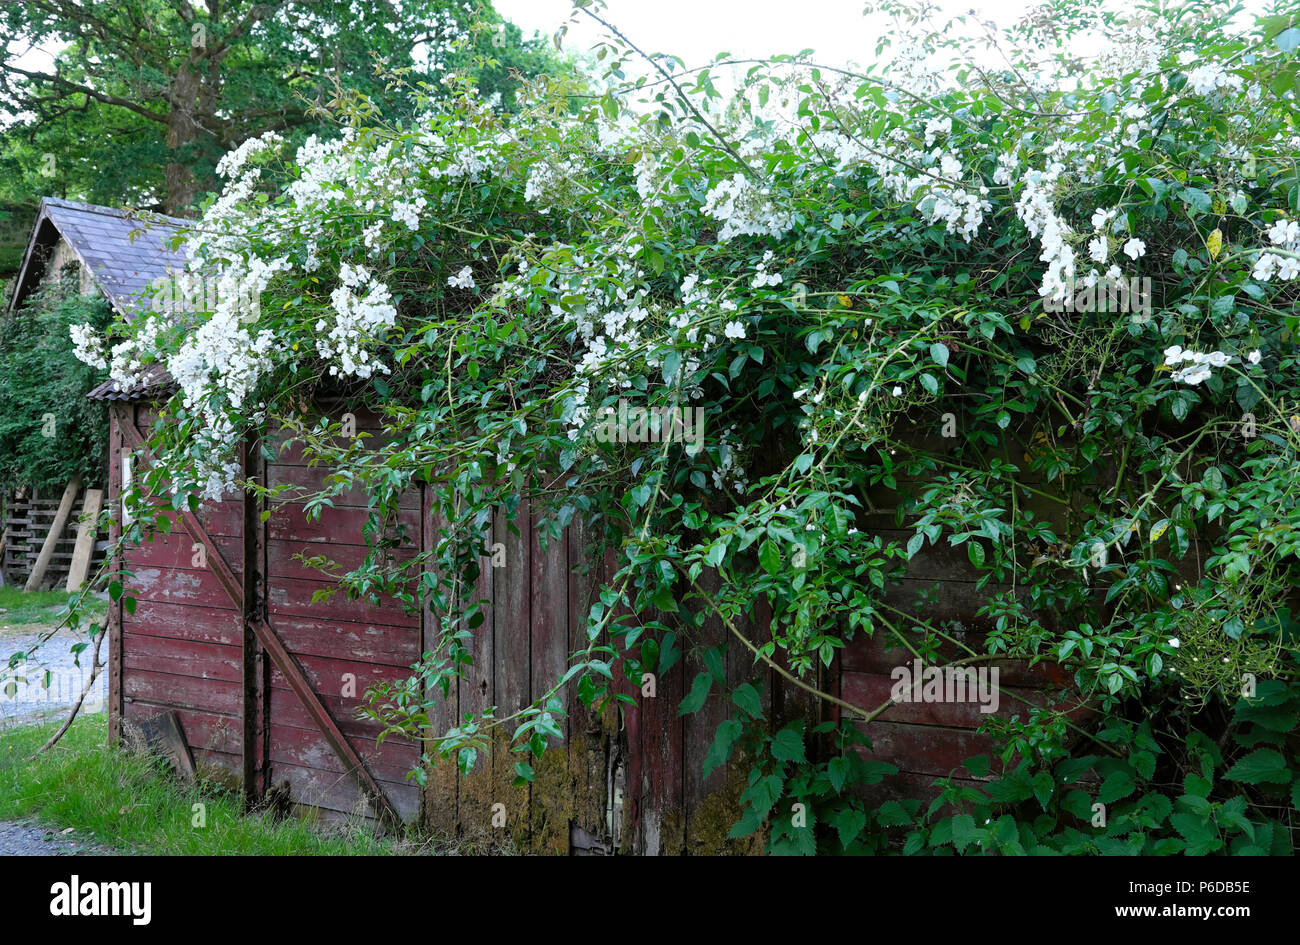 Rosa filipes Kiftsgate white rose rambling over an old railway carriage shed in a garden in rural Carmarthenshire Dyfed West Wales UK   KATHY DEWITT - Stock Image